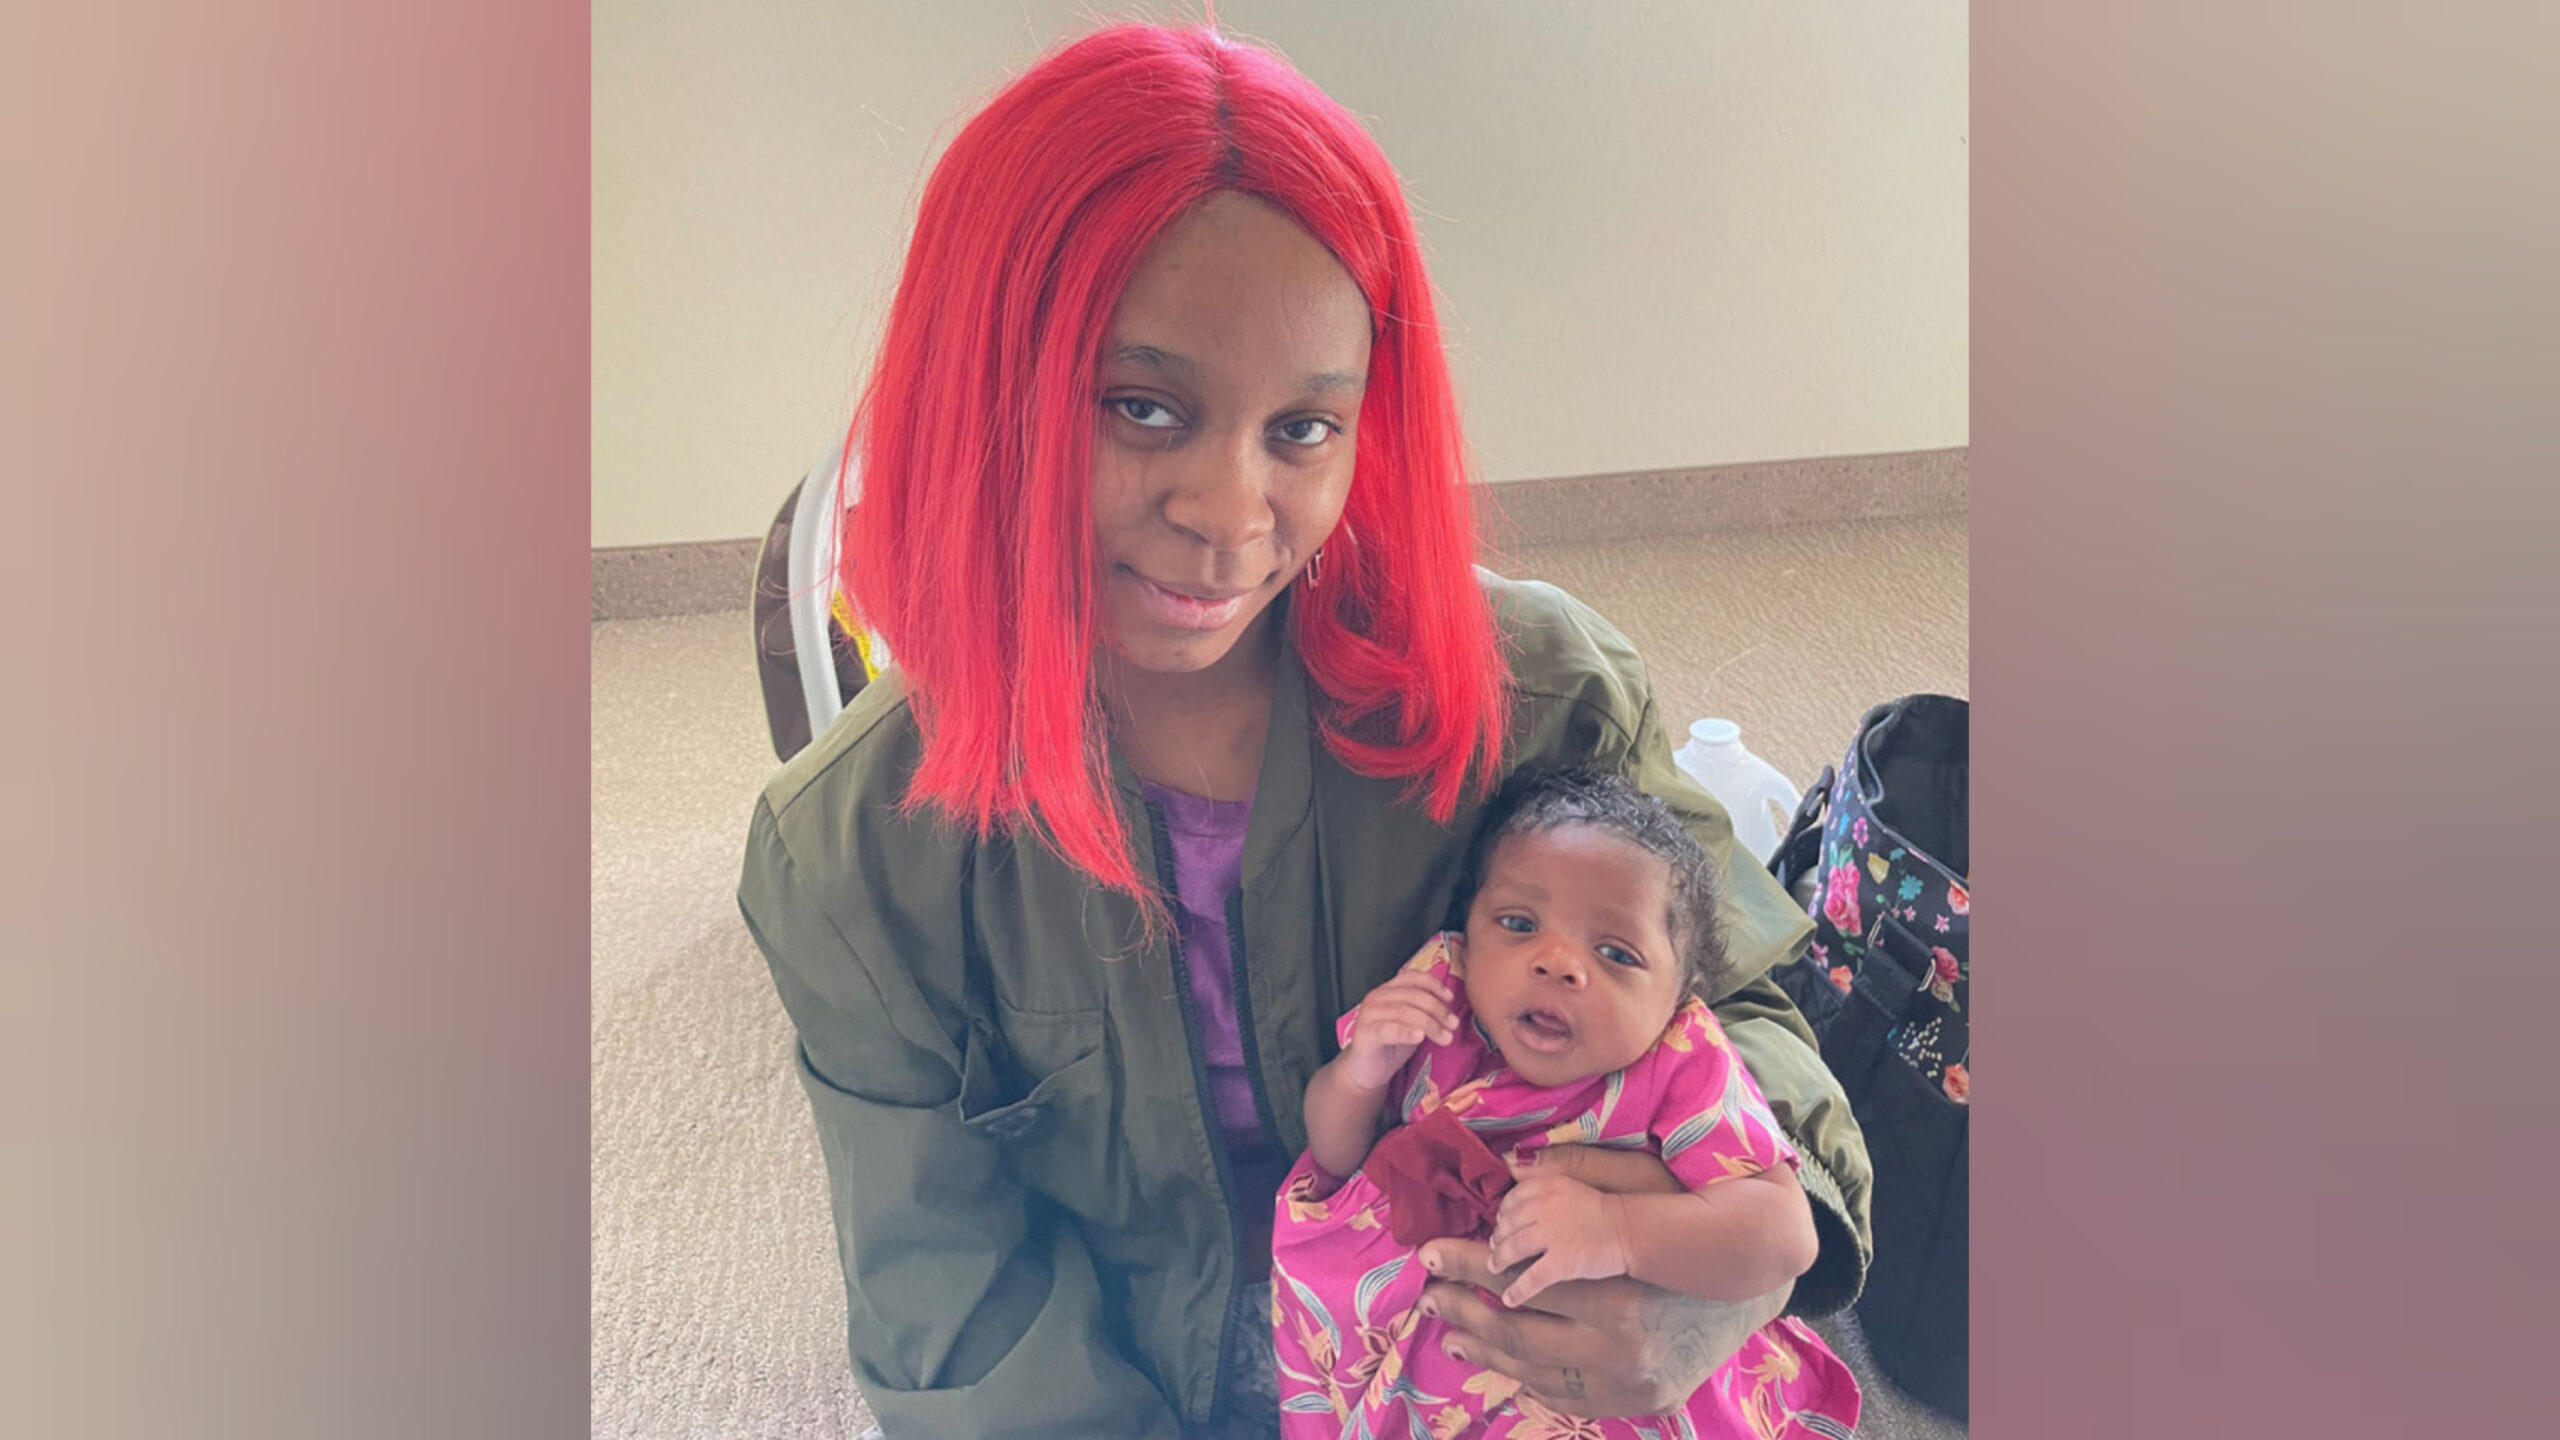 Police in Calhoun County, Michigan are searching for a missing baby who may be in danger after her mother did not surrender her over to CPS.